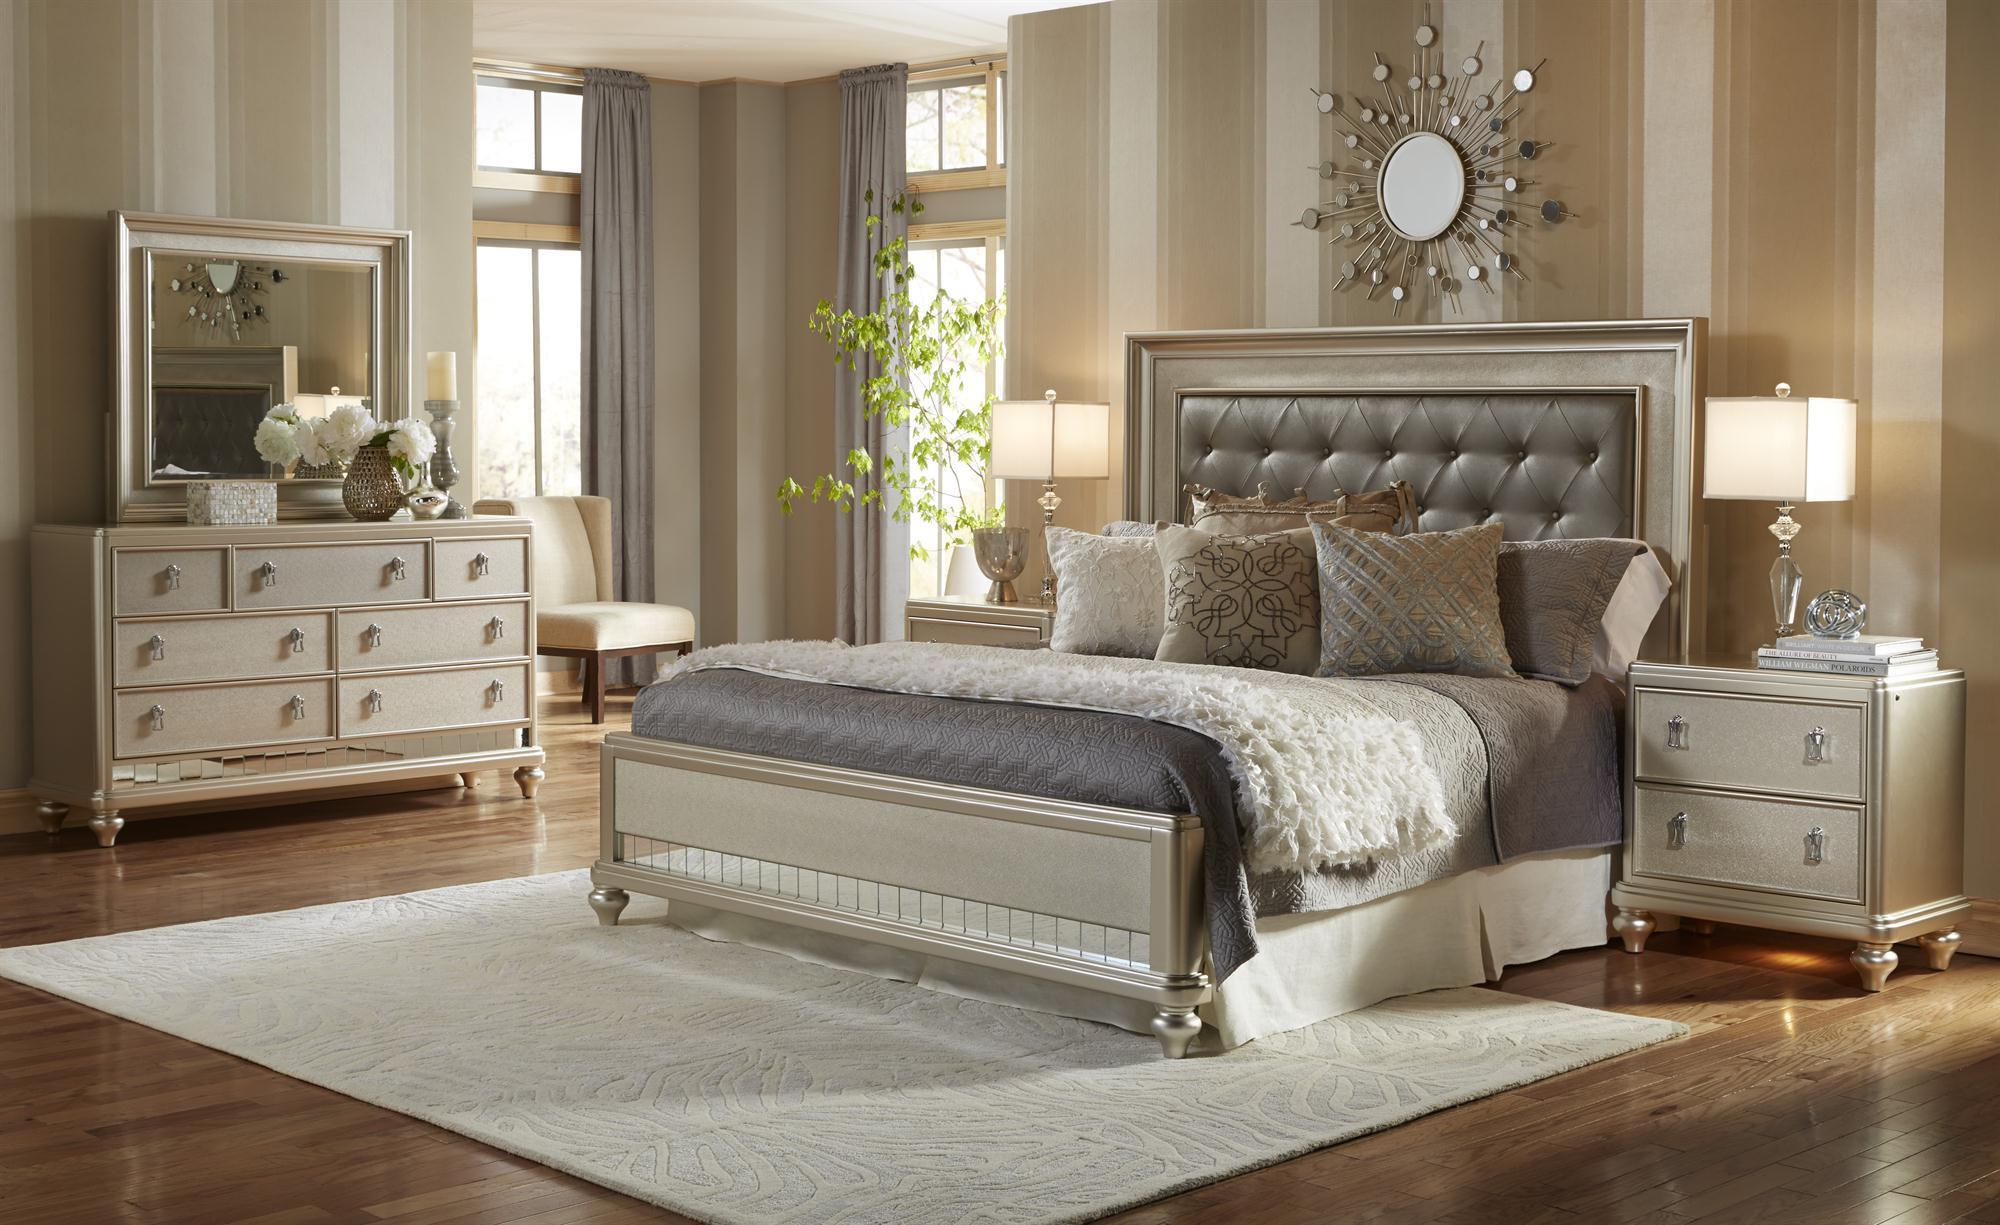 Samuel lawrence diva queen panel bed w tufted headboard for Bedroom furniture 37027